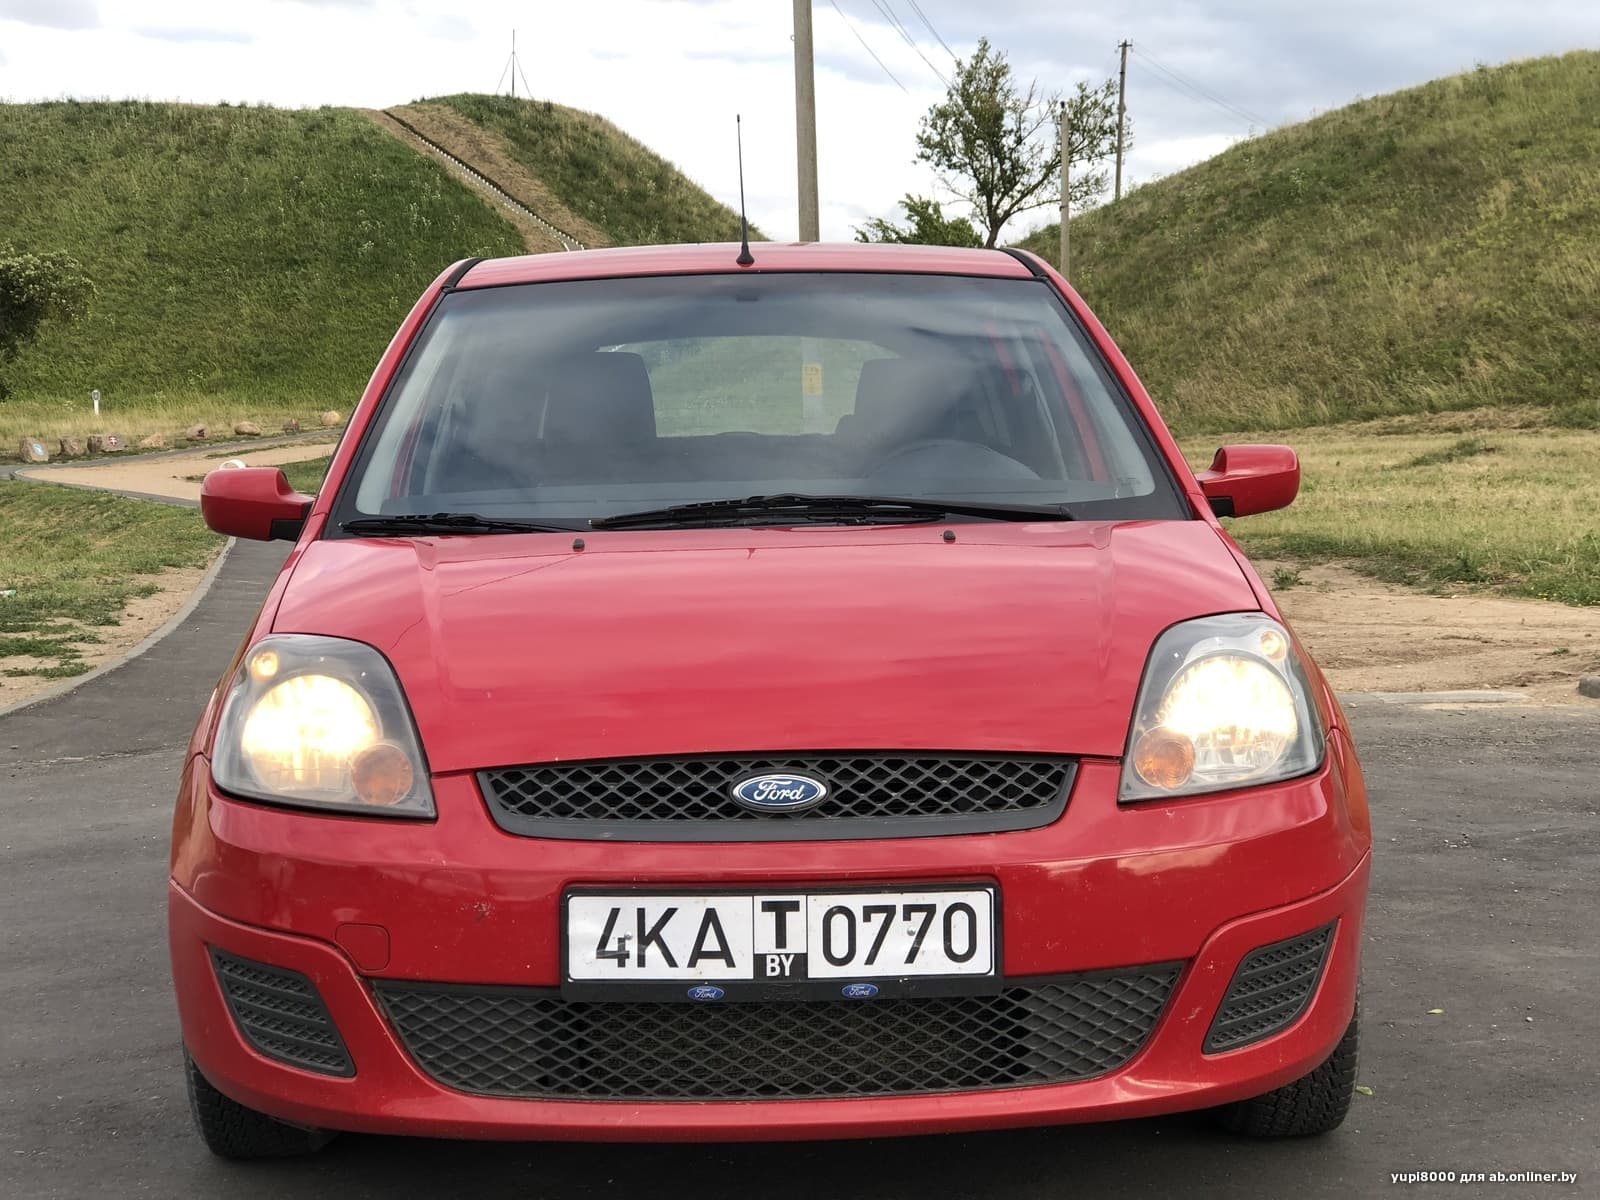 Ford Fiesta cl